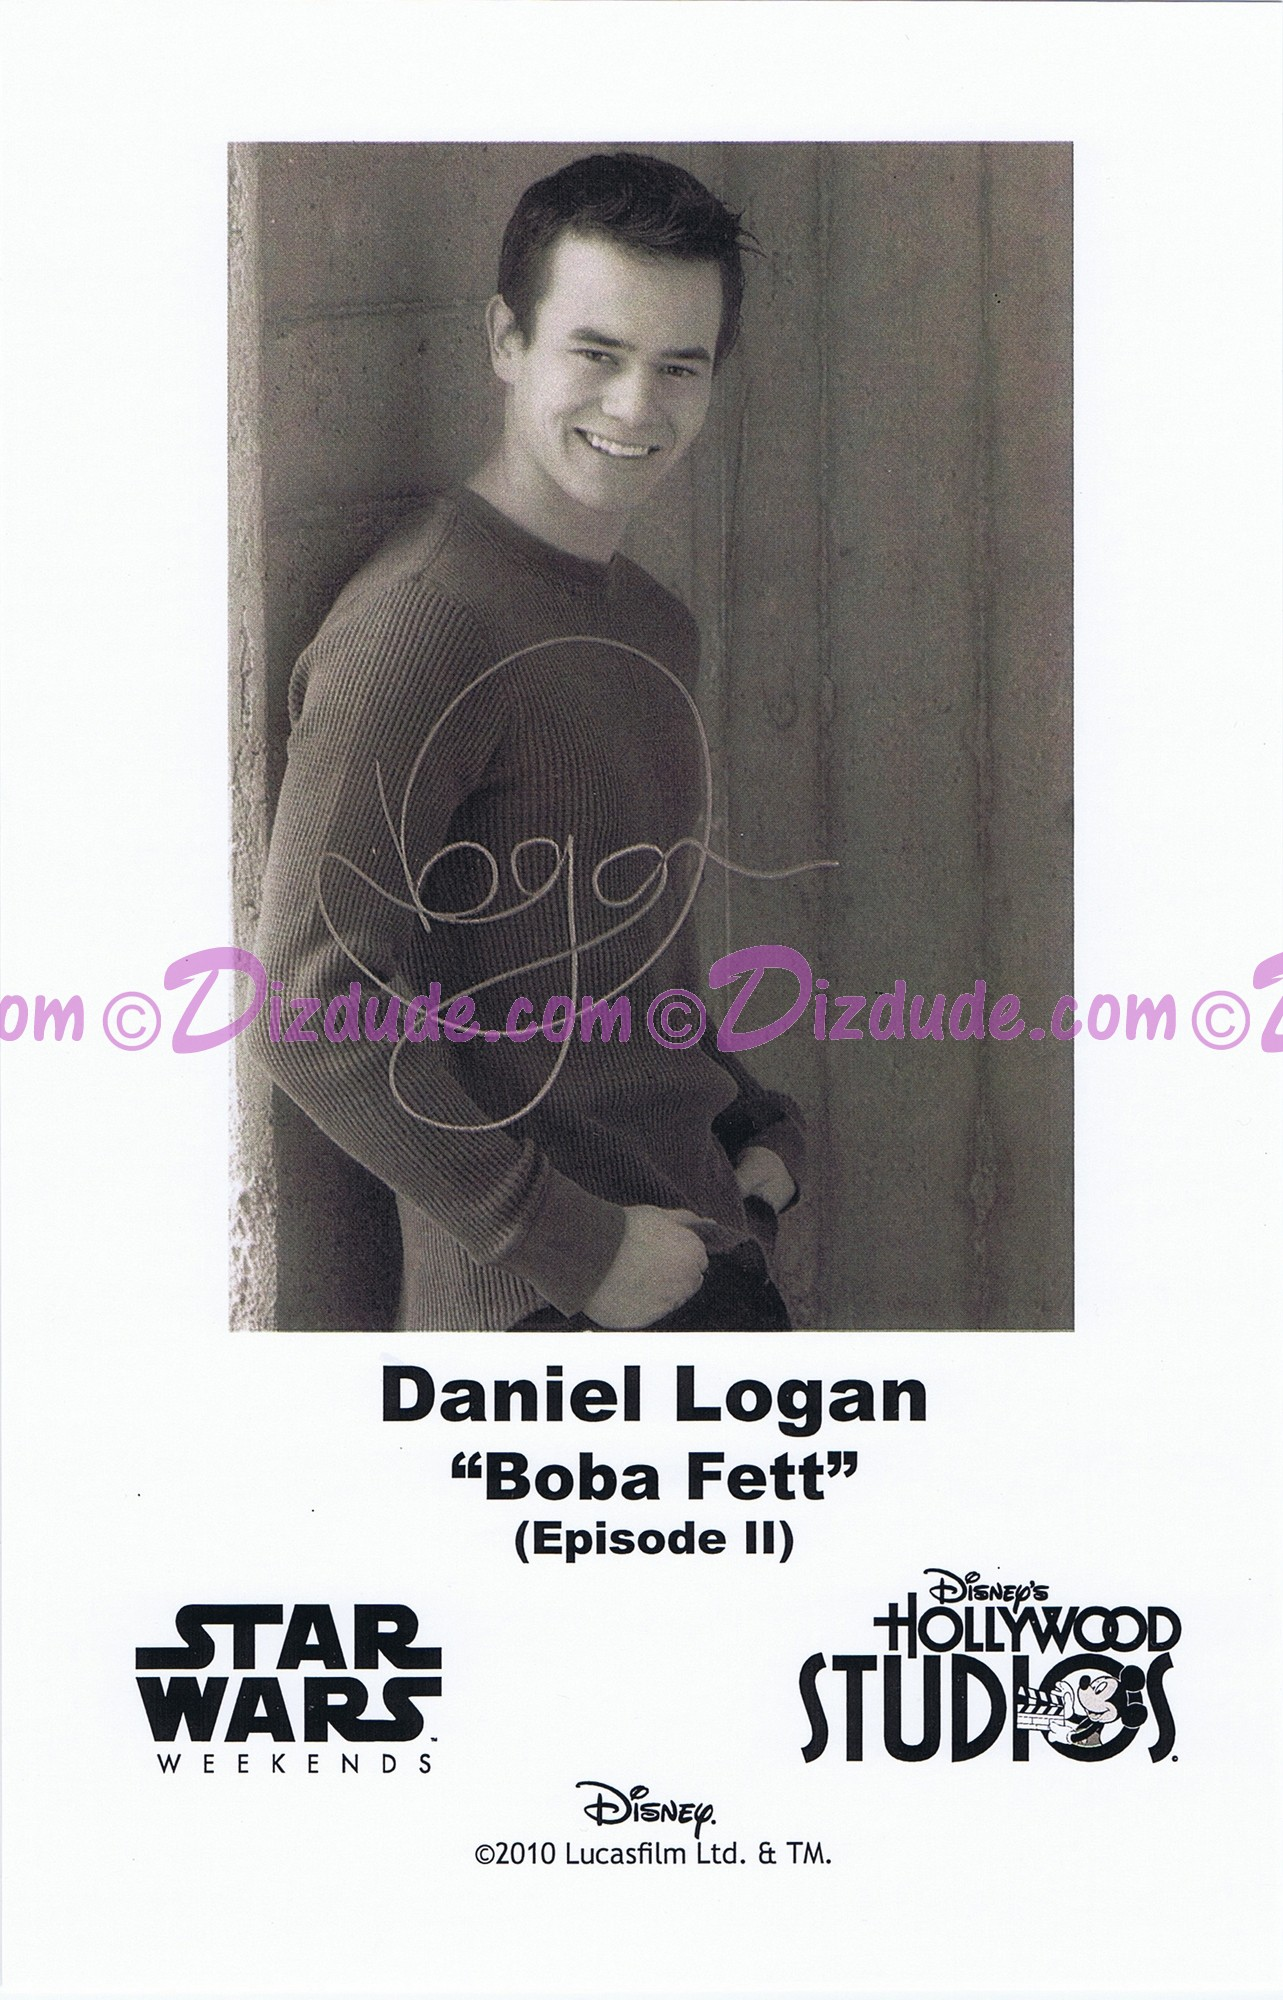 Daniel Logan who played Young Boba Fett Presigned Official Star Wars Weekends 2010 Celebrity Collector Photo